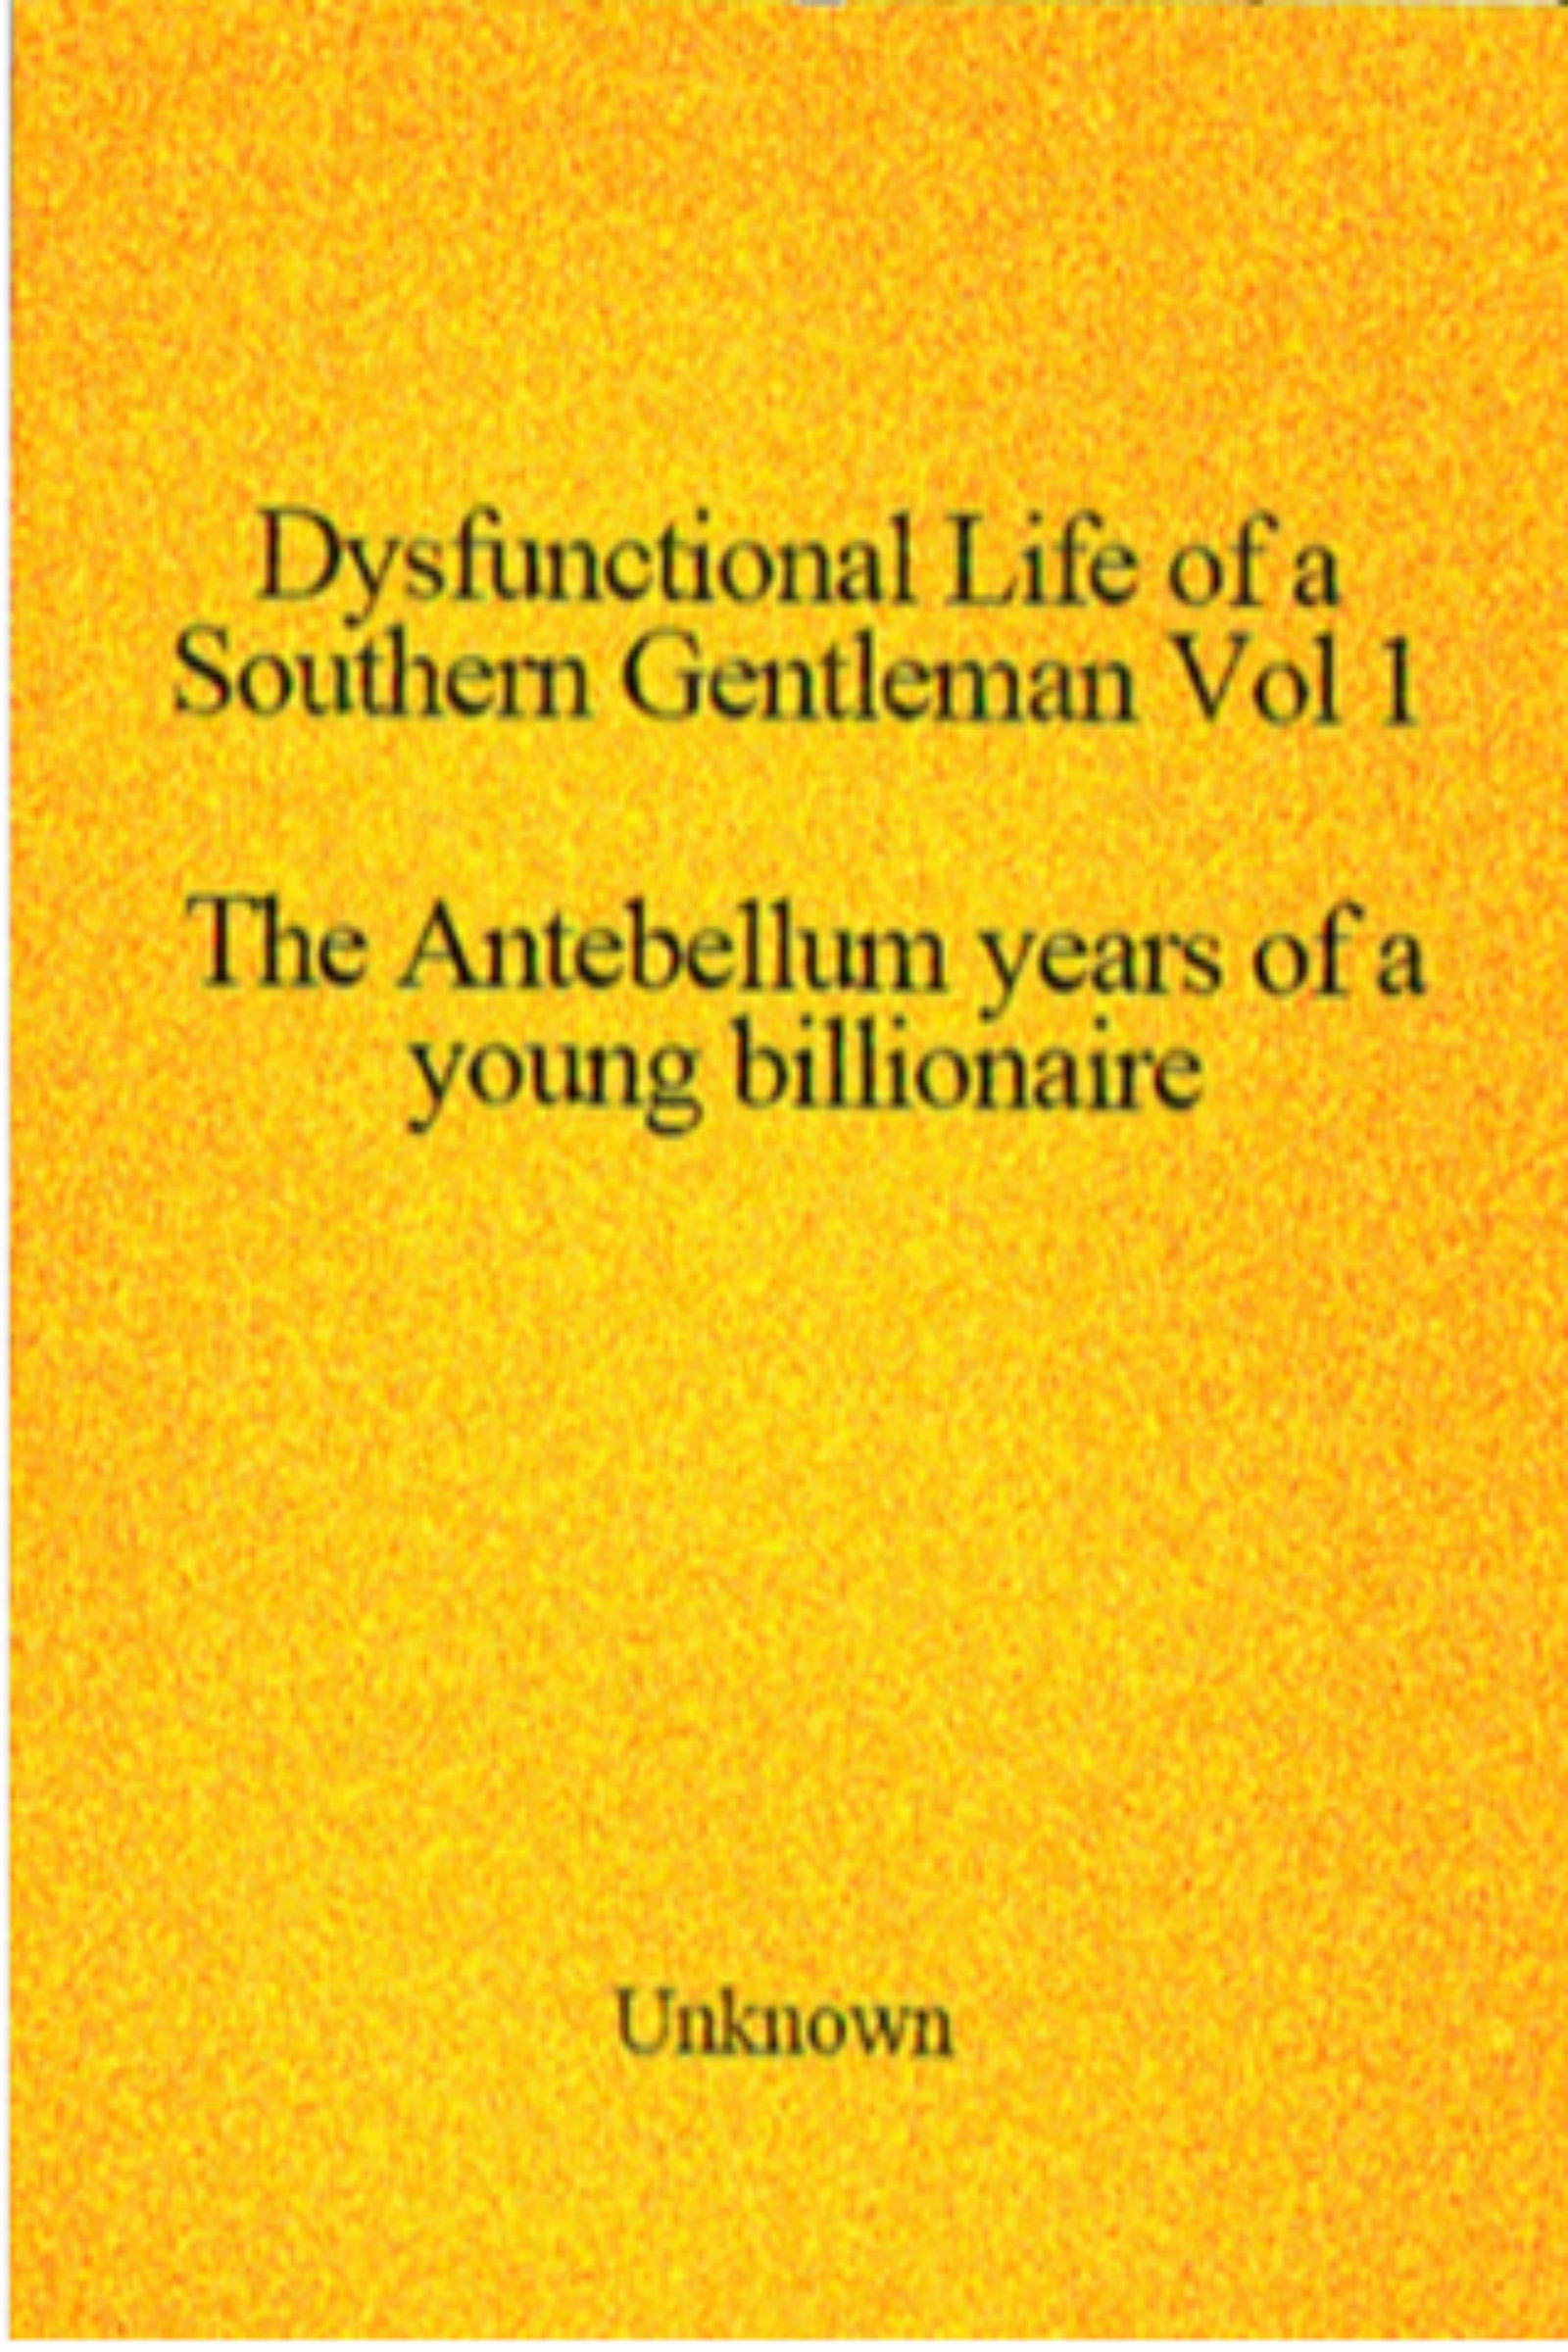 Dysfunctional Life of a Southern Gentleman Vol 1. The Antebellum years of a Young Billionaire  by  Unknown